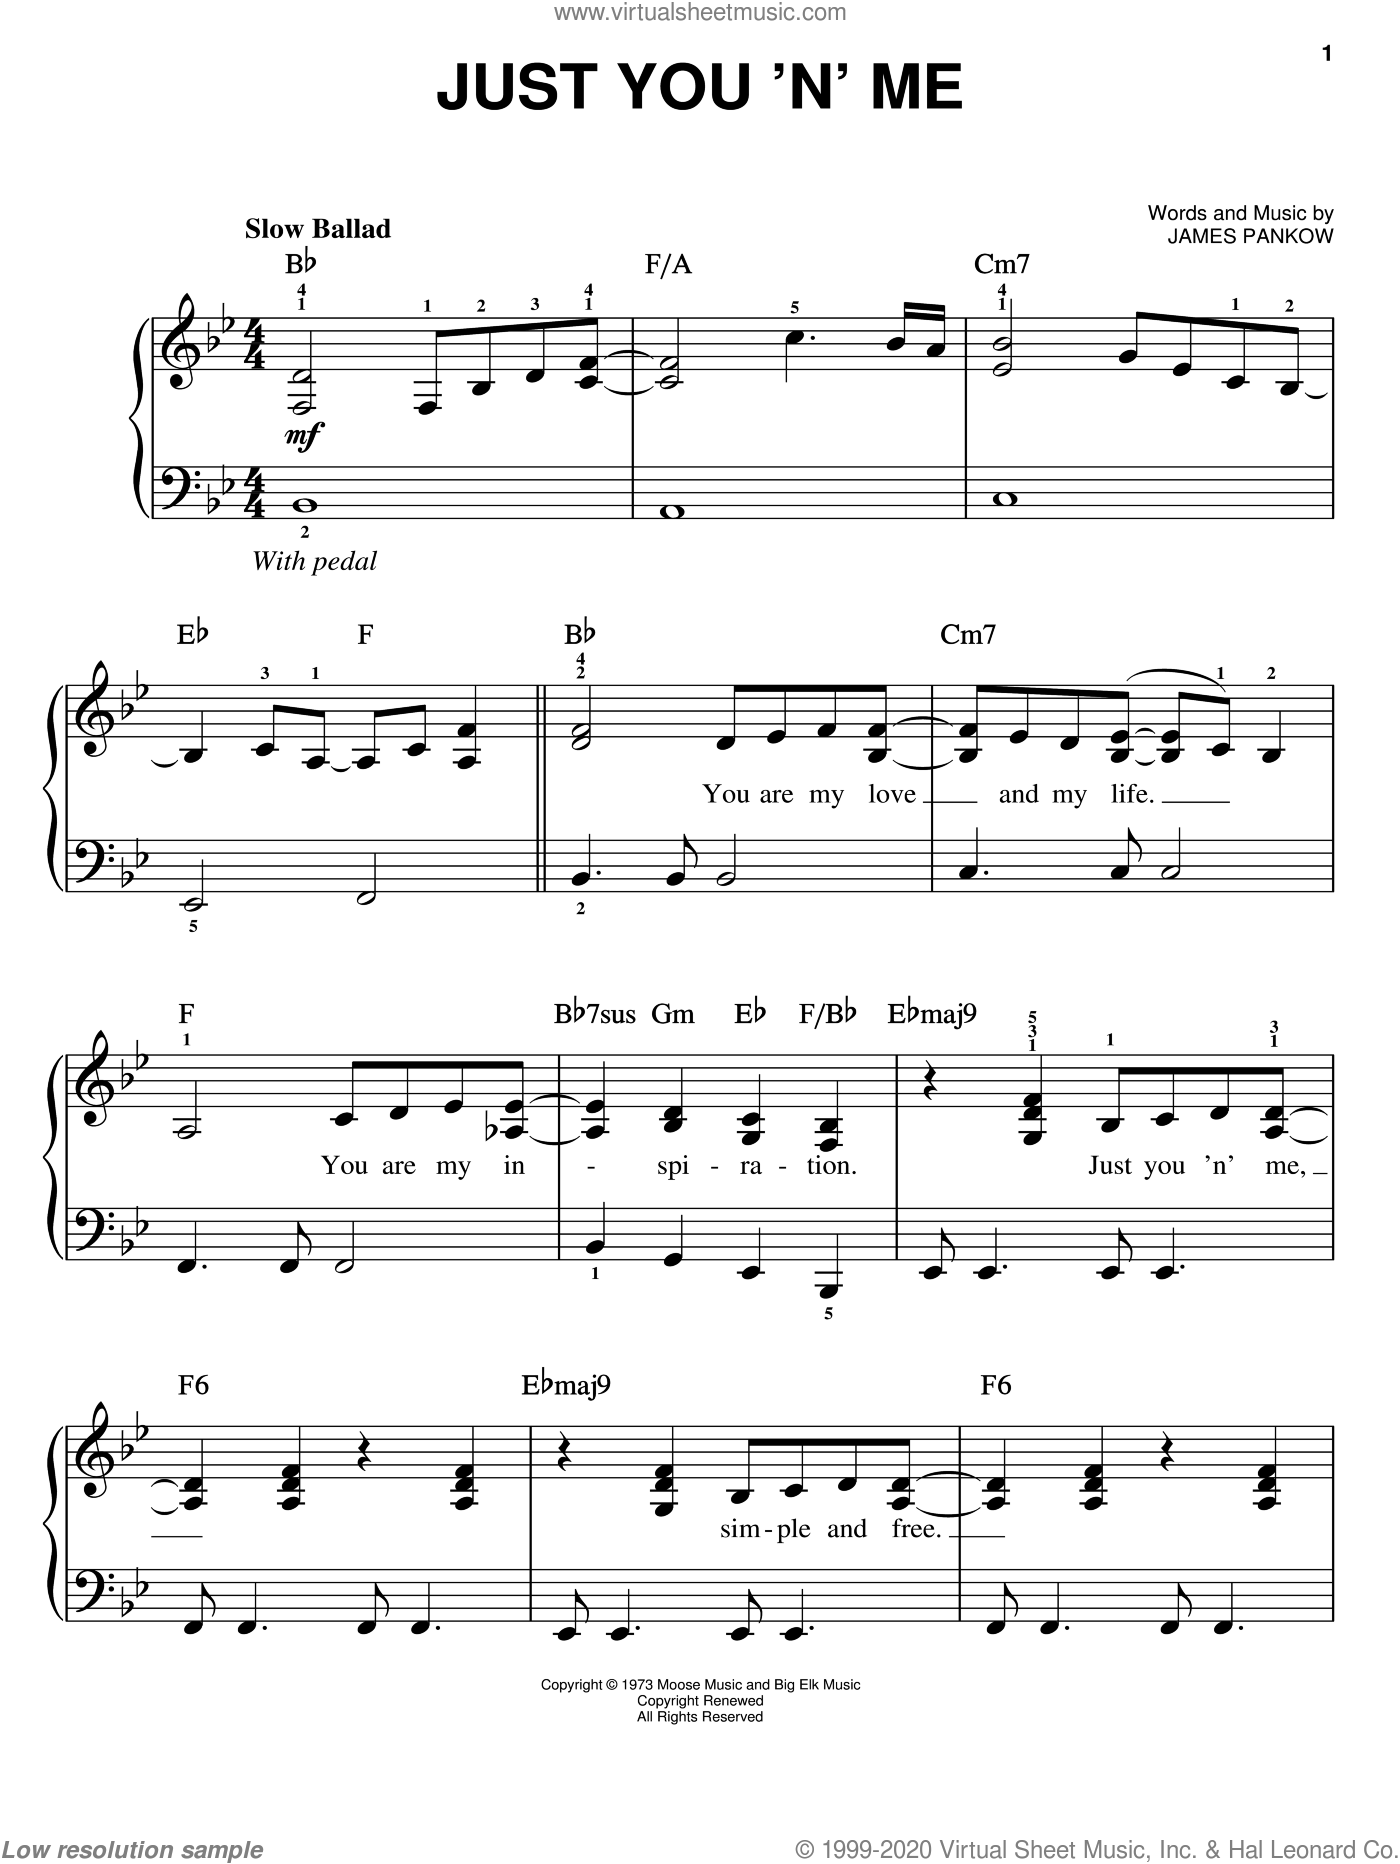 Just You 'N' Me sheet music for piano solo by Chicago and James Pankow, easy skill level